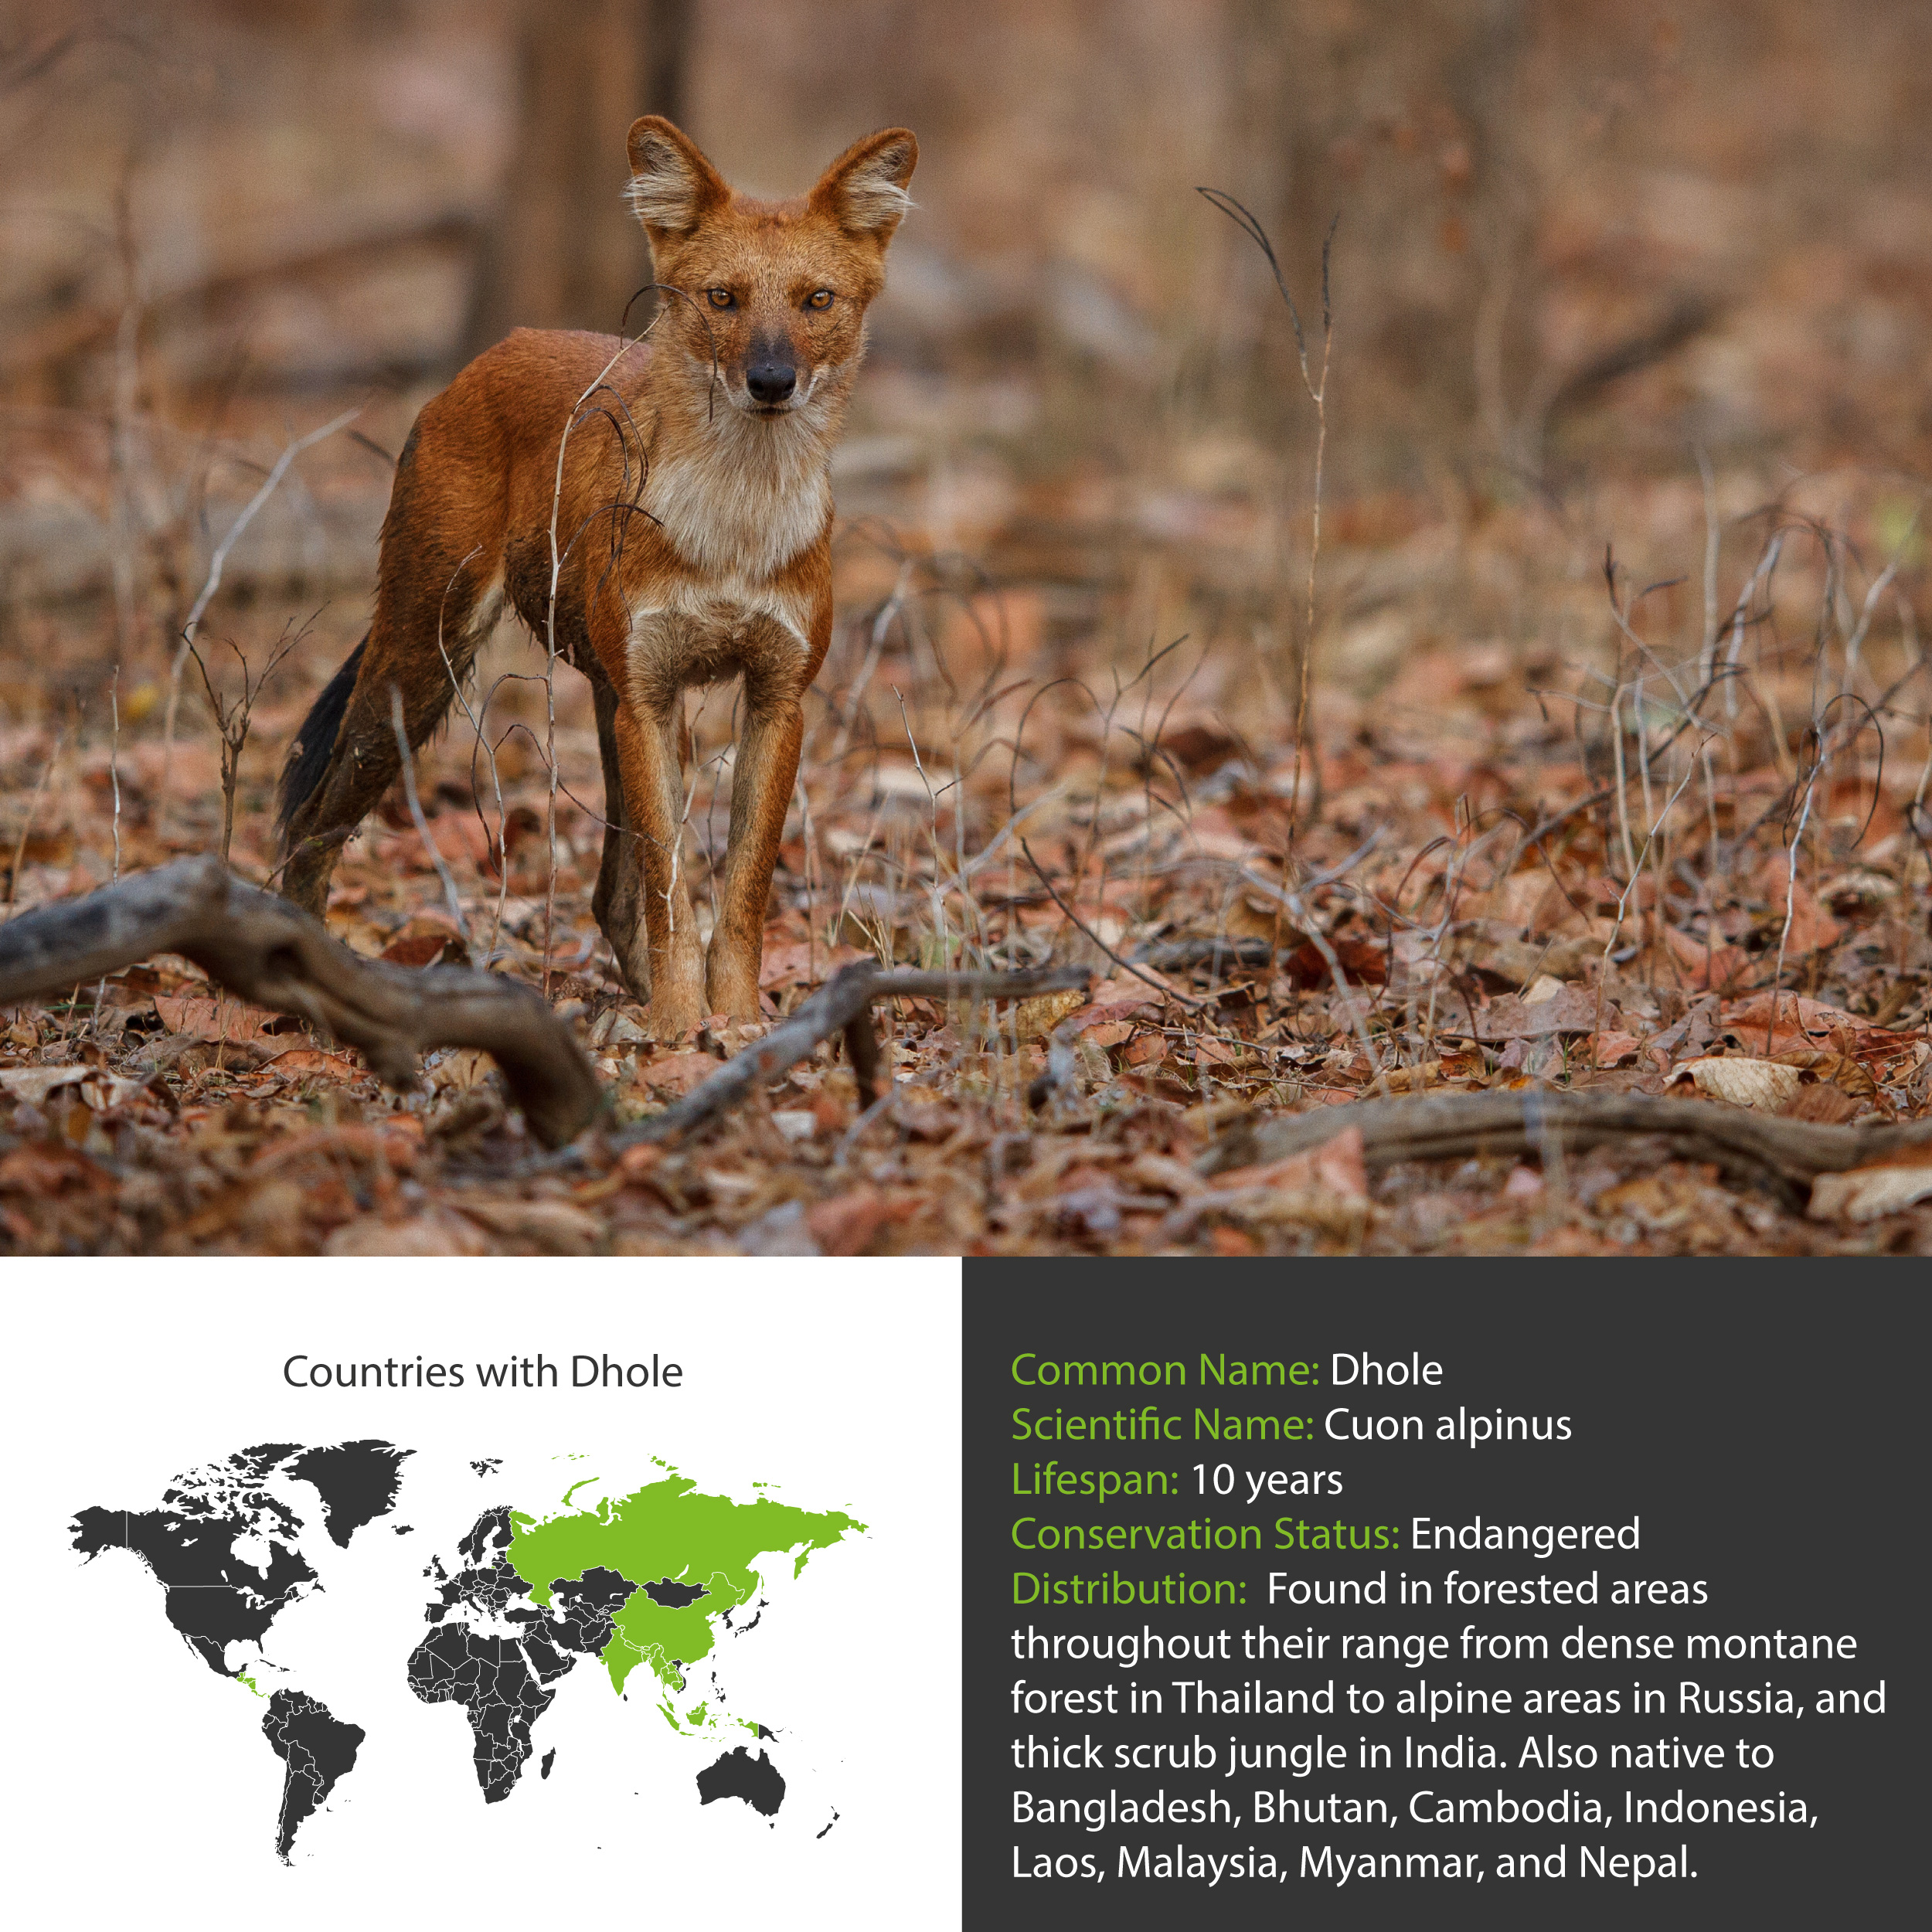 Dhole Distribution